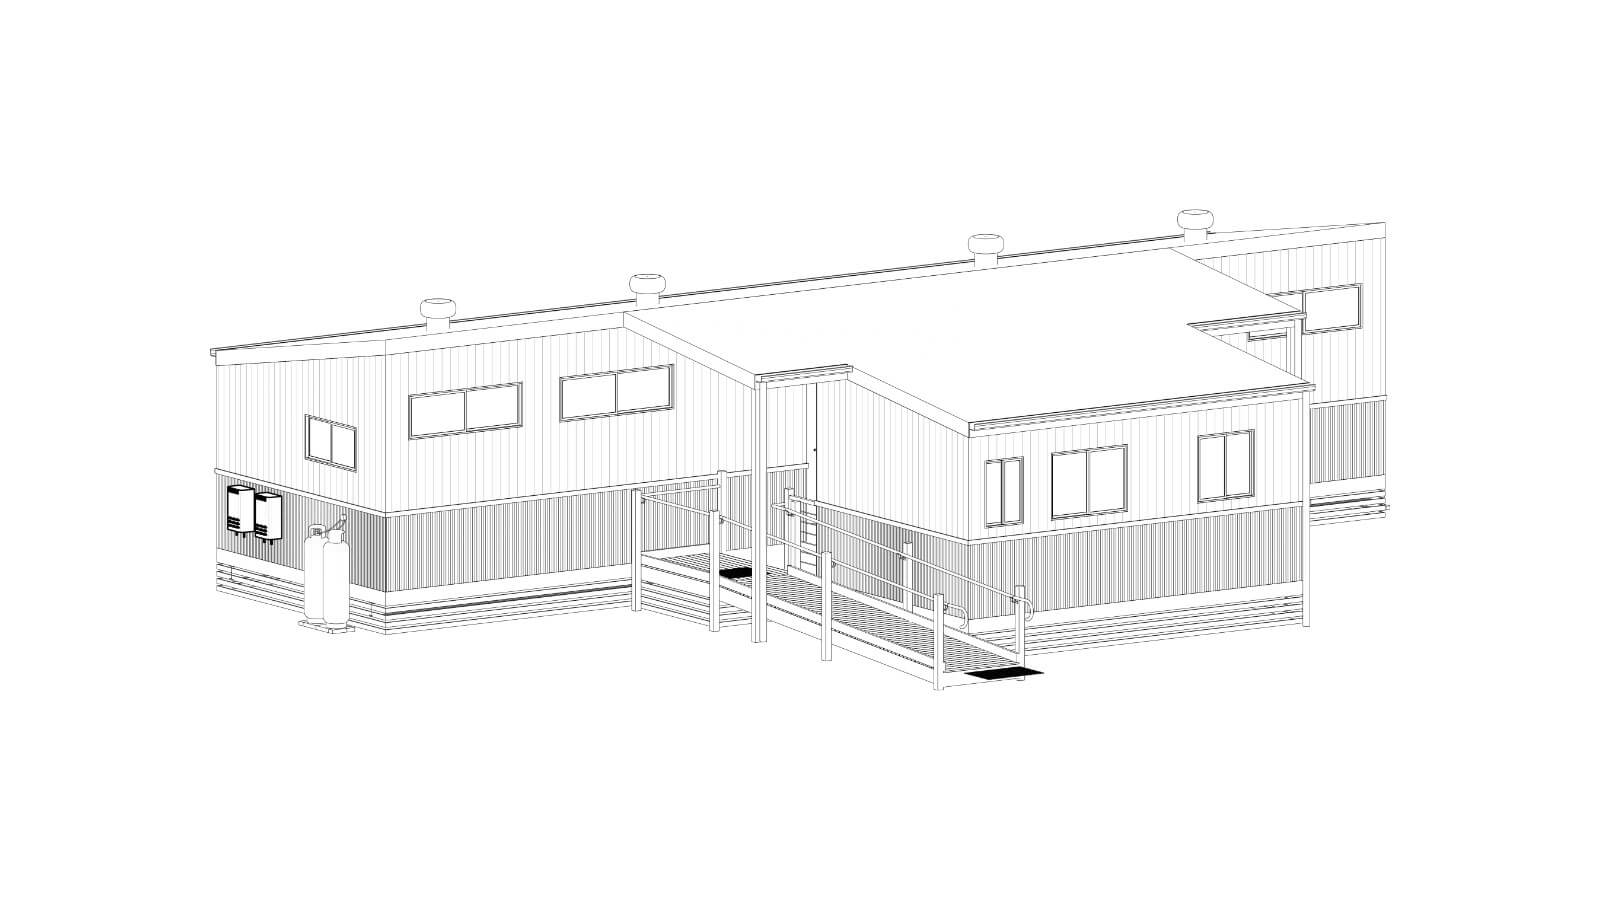 Rendered image of an Accessible Disabled Cabin